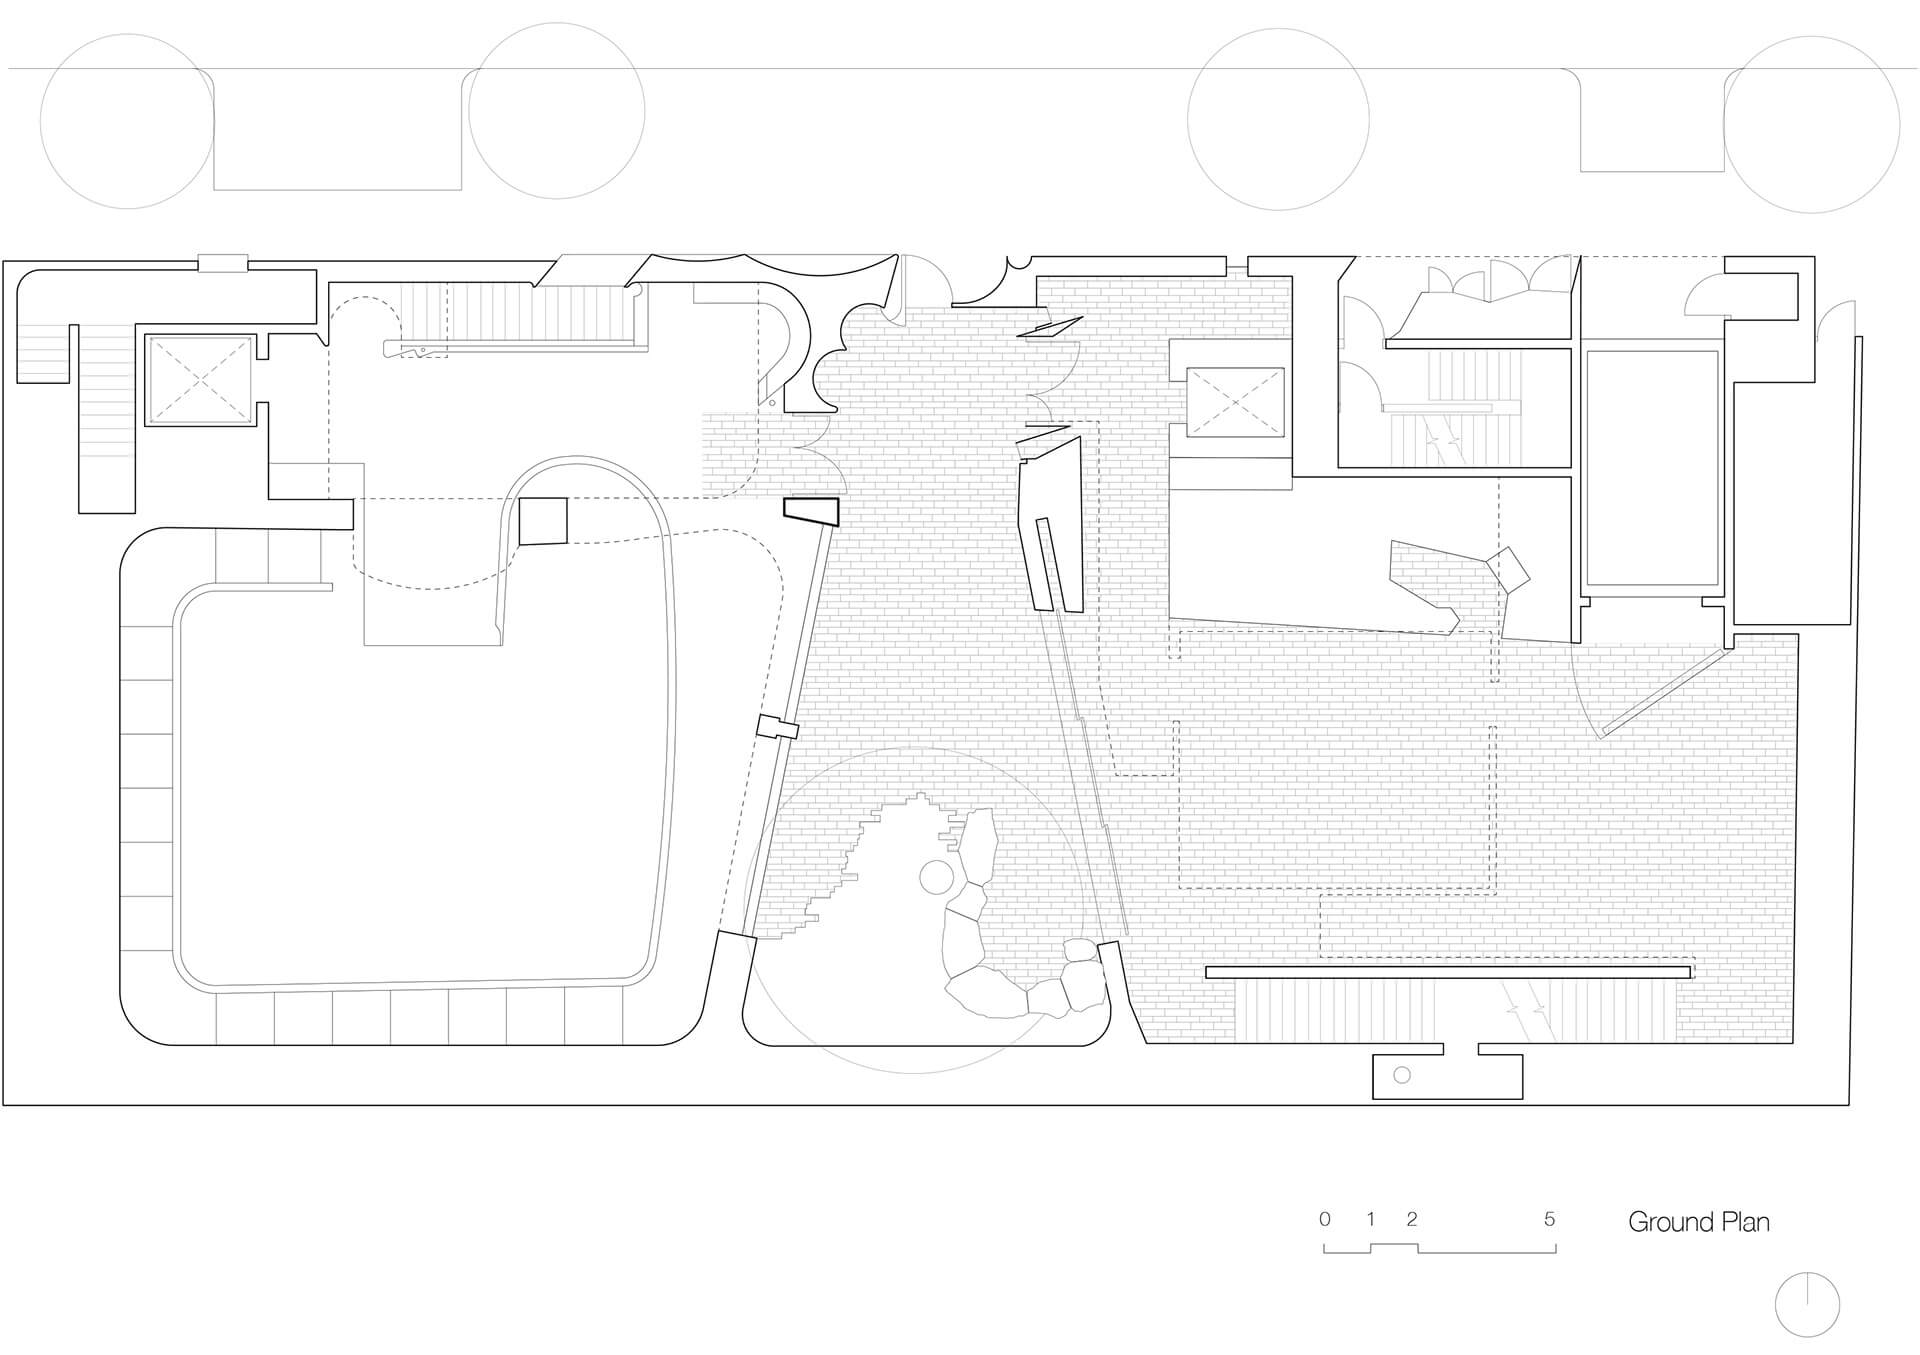 The Ground Floor plan that shows the performance space by Durbach Block Jaggers on the left and gallery by John Wardle Architects on the right | Phoenix Central Park | Durbach Block Jaggers and John Wardle Architects | STIRworld